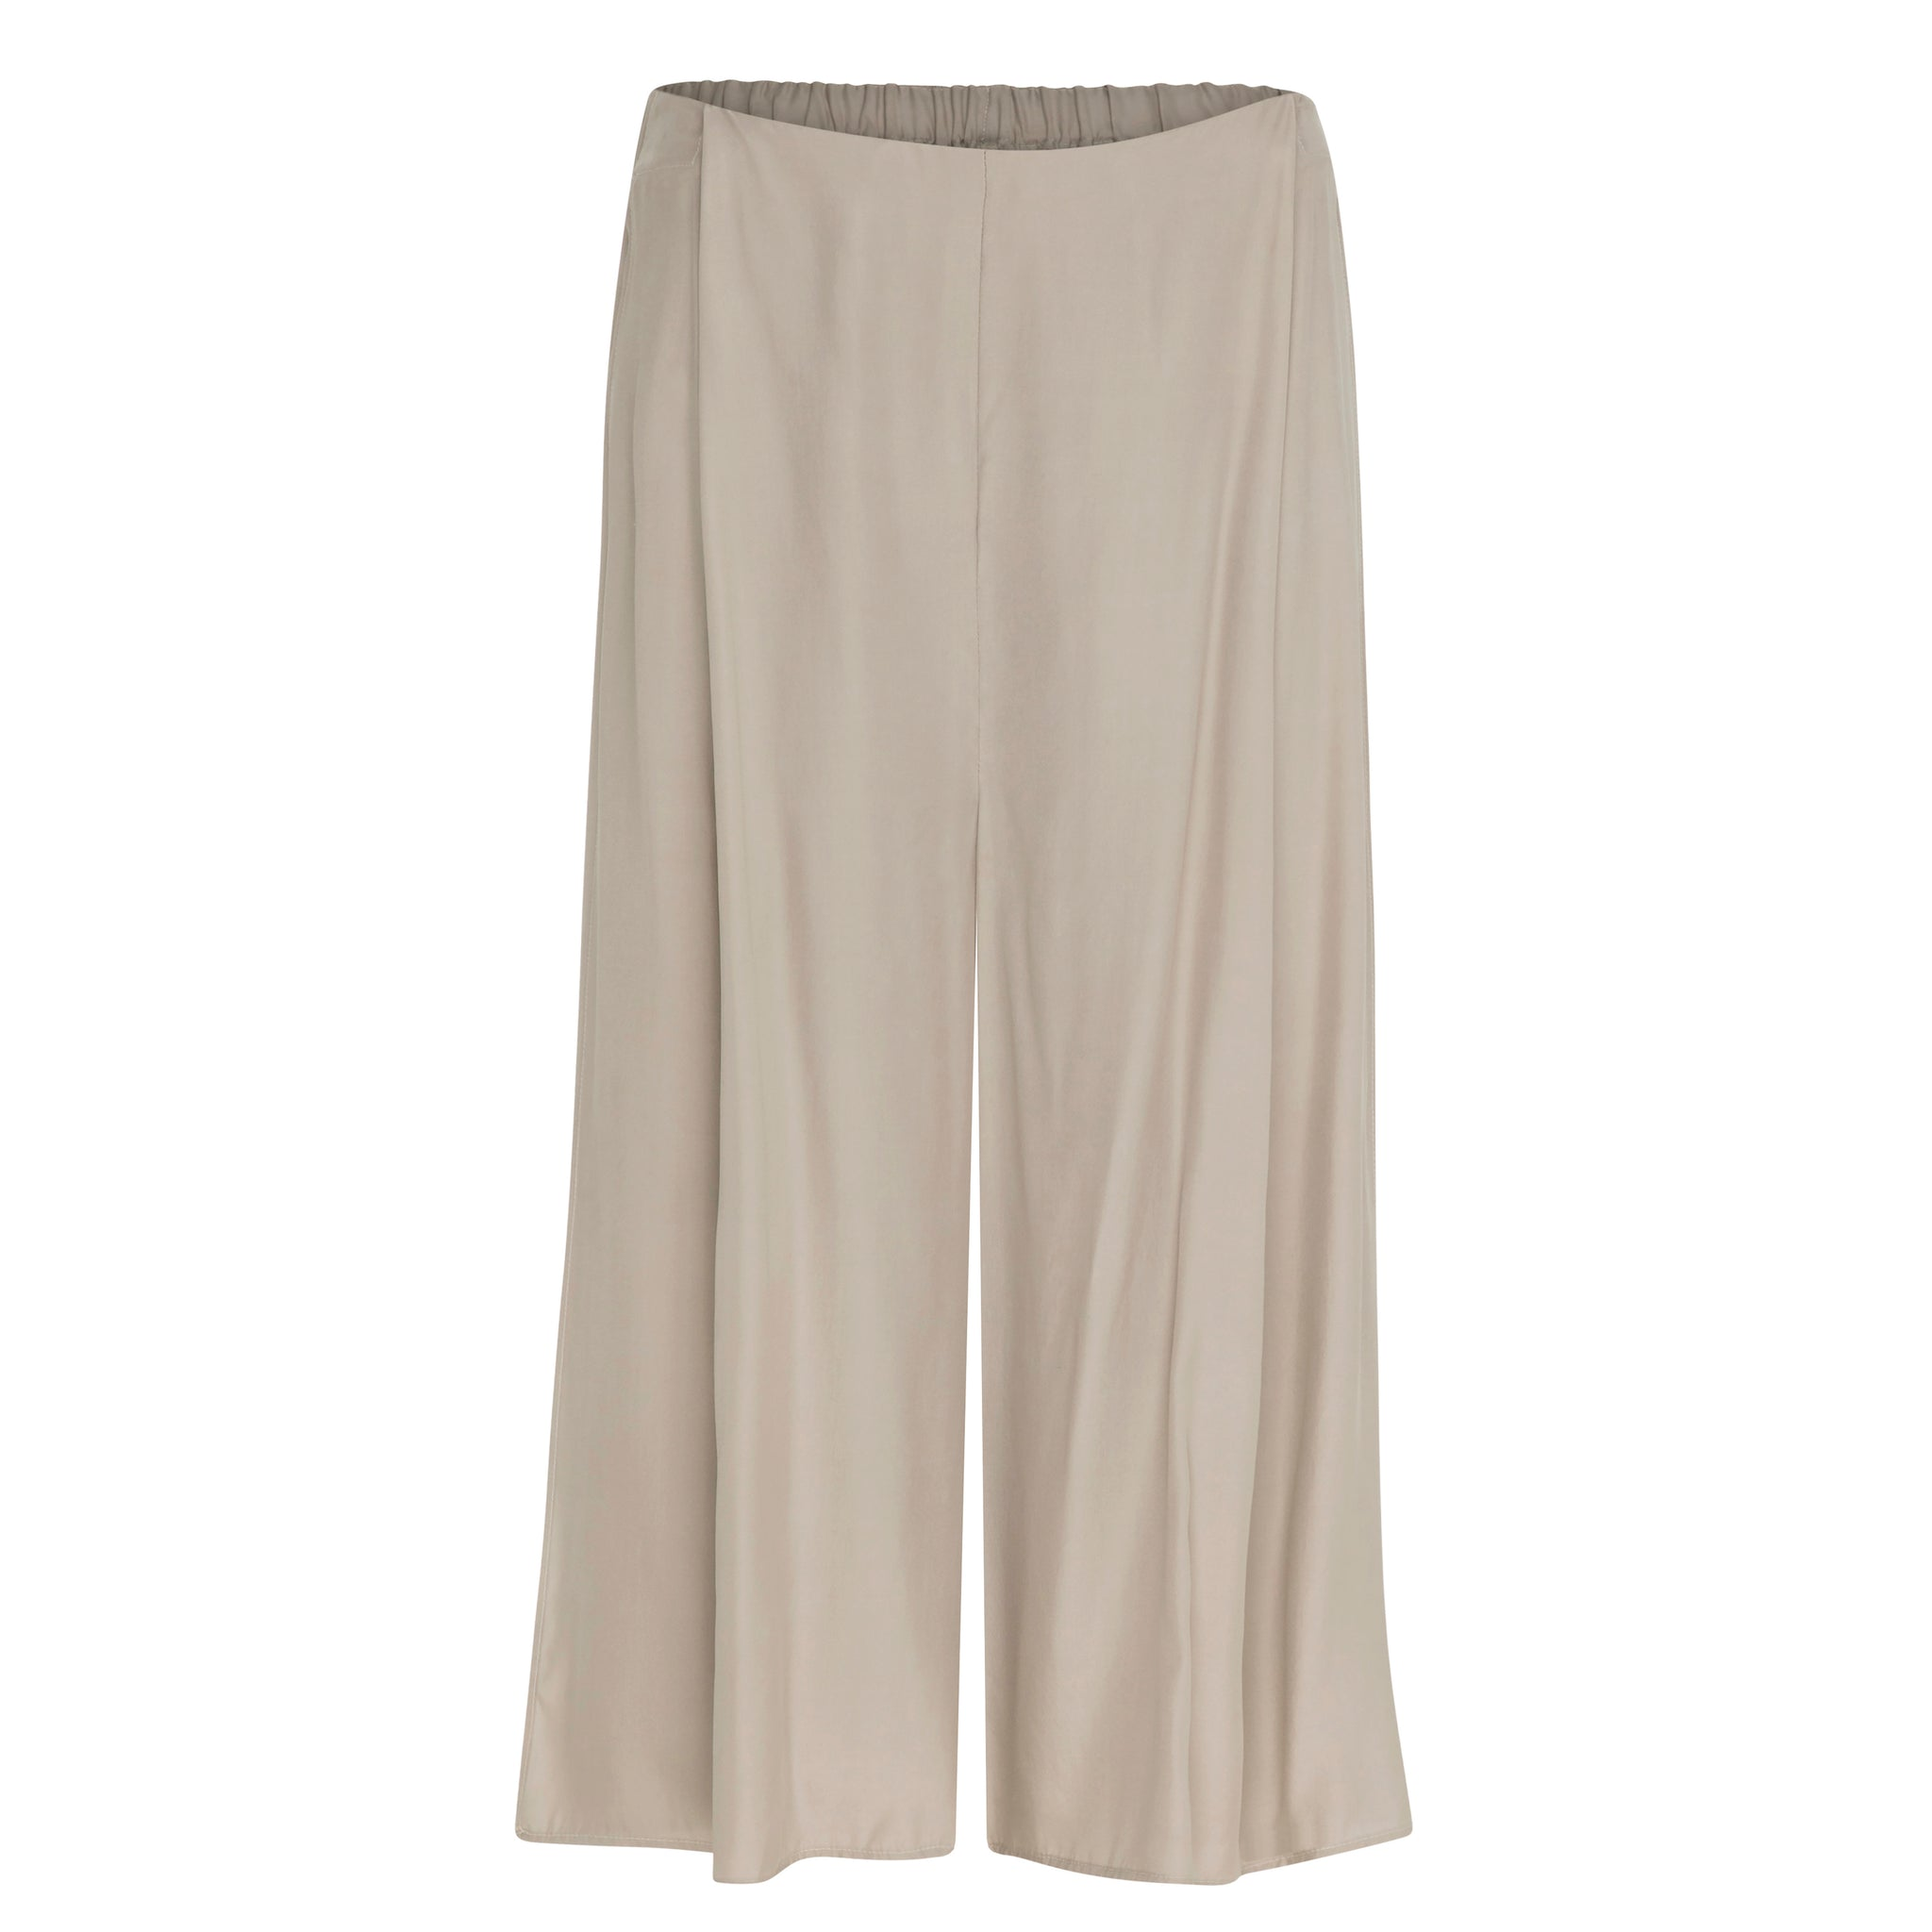 Radella Pant -  Sand Washed Pure Silk